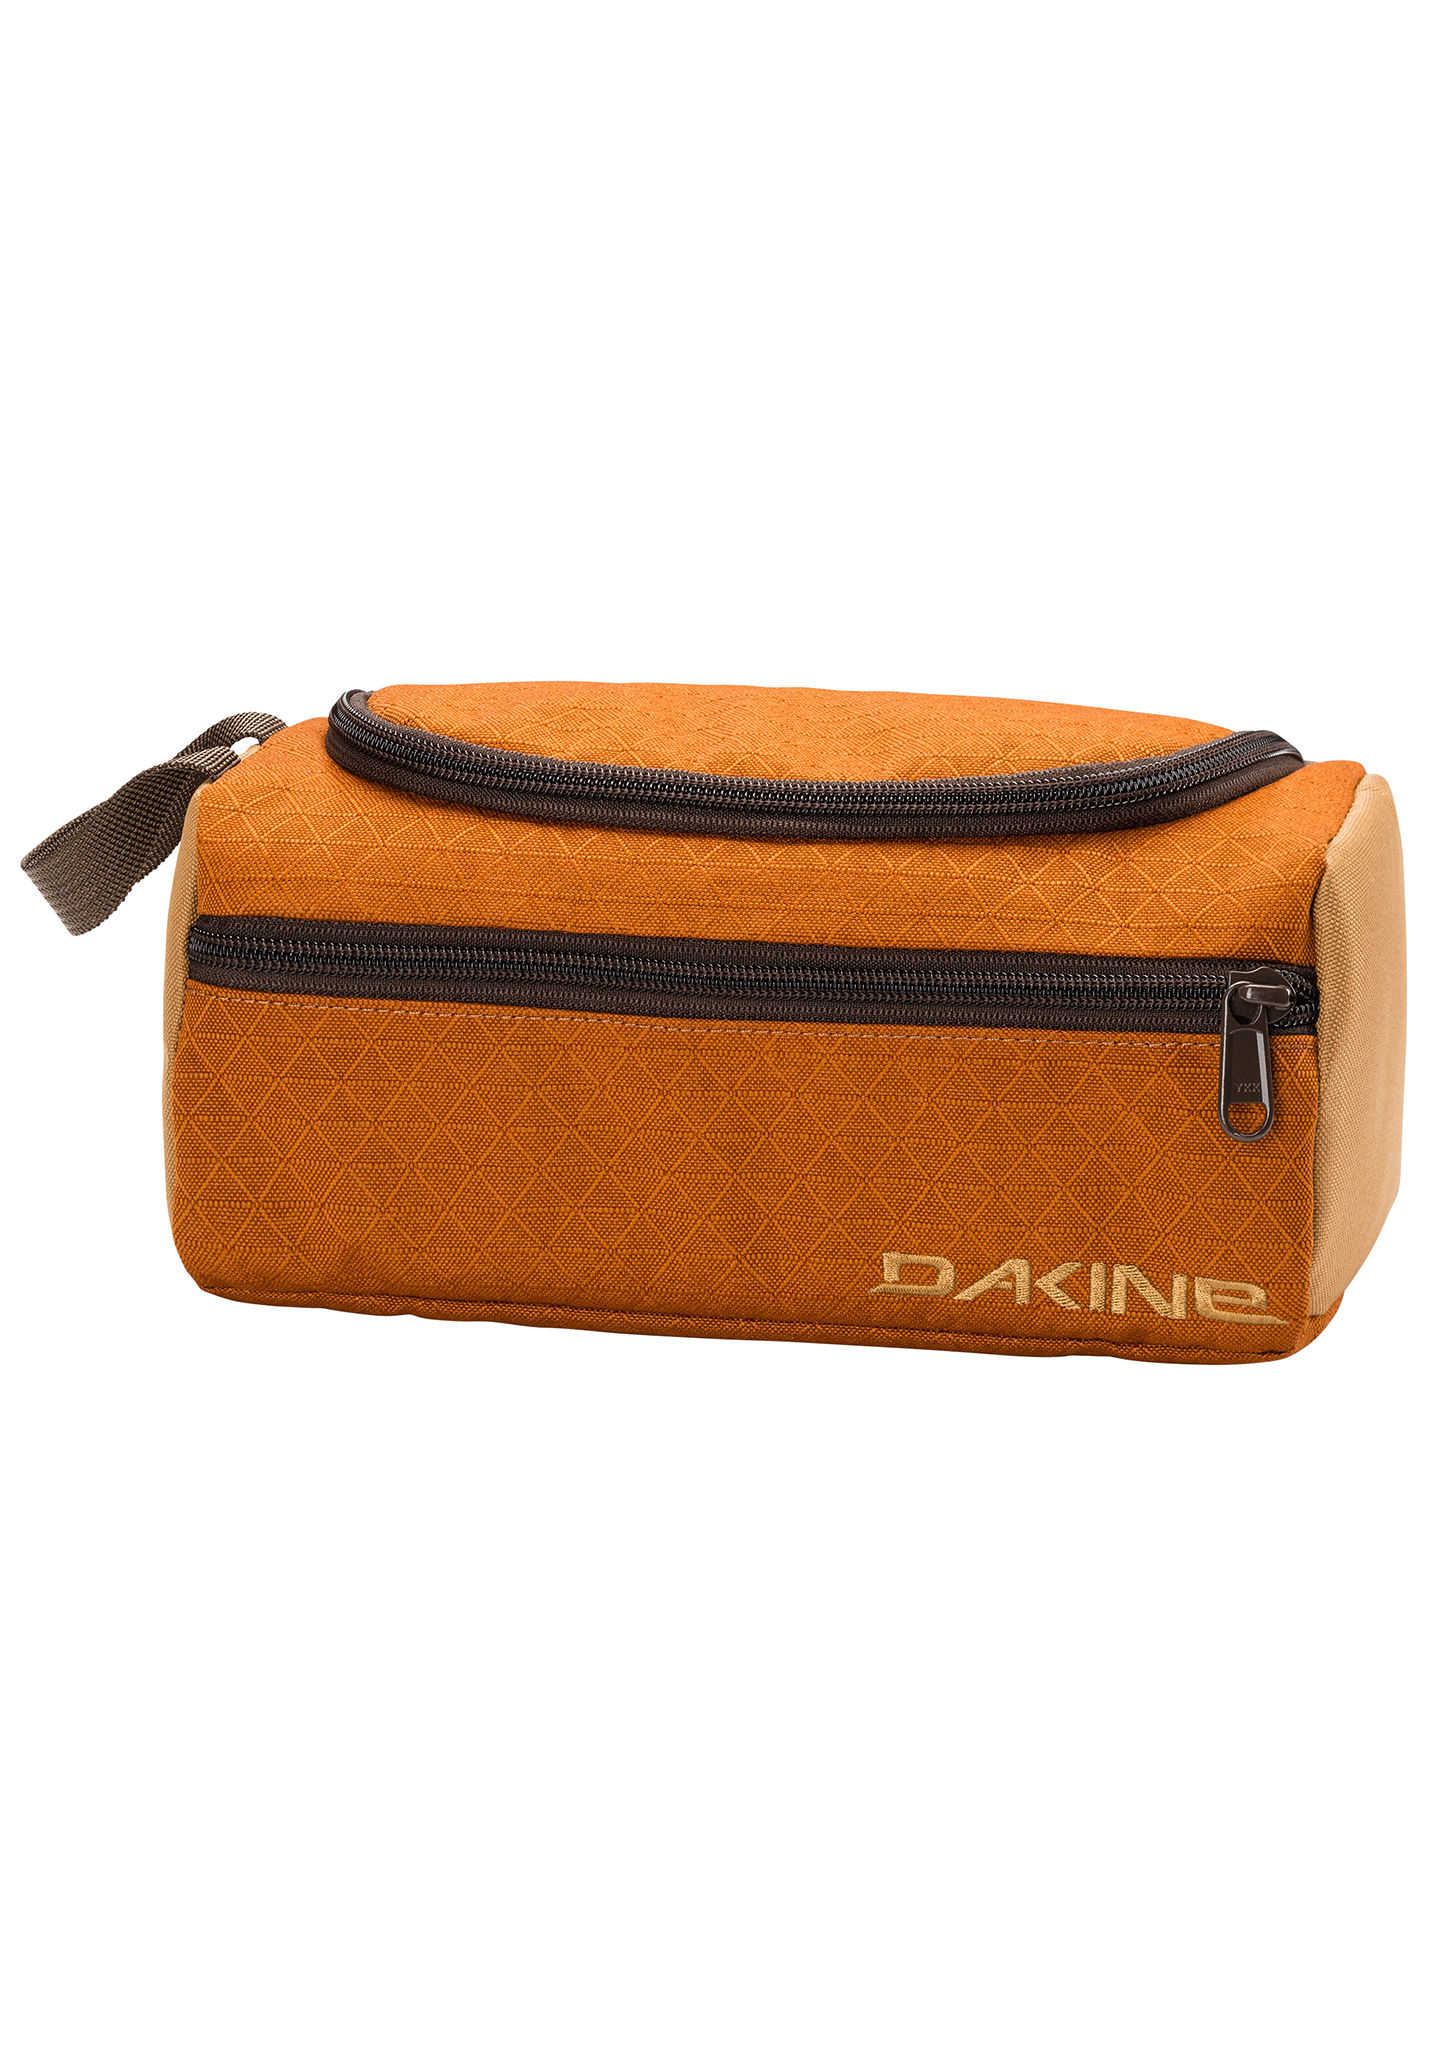 Trousse de toilette Dakine Groomer Copper orange tuAxdskJS